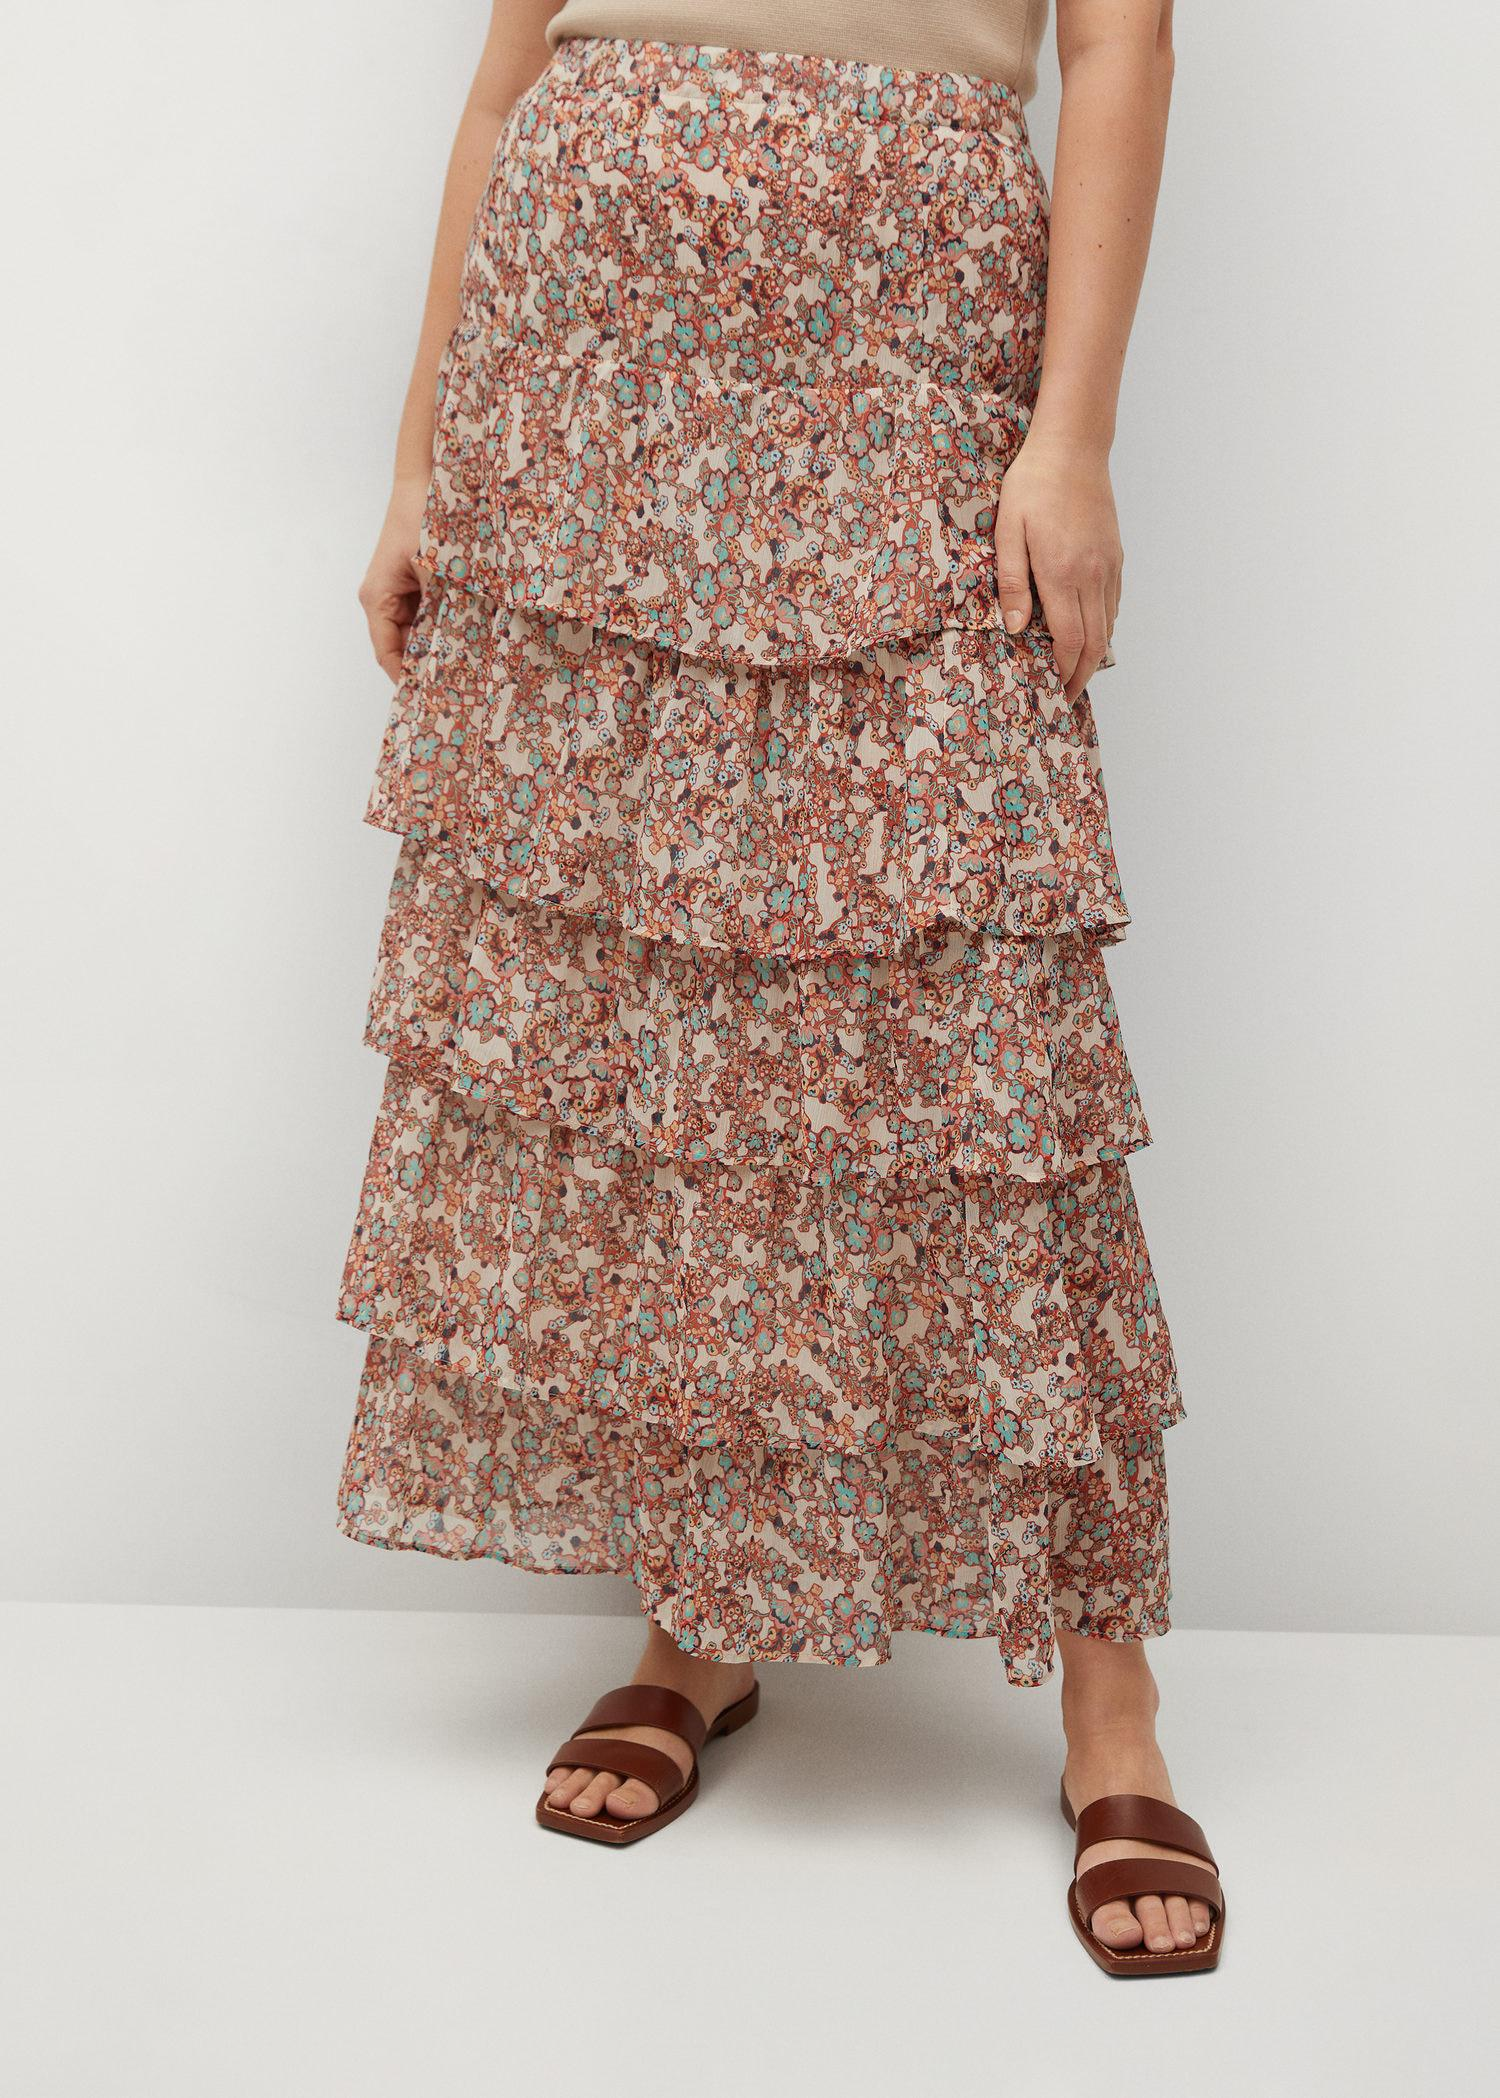 Printed skirt with ruffles 1